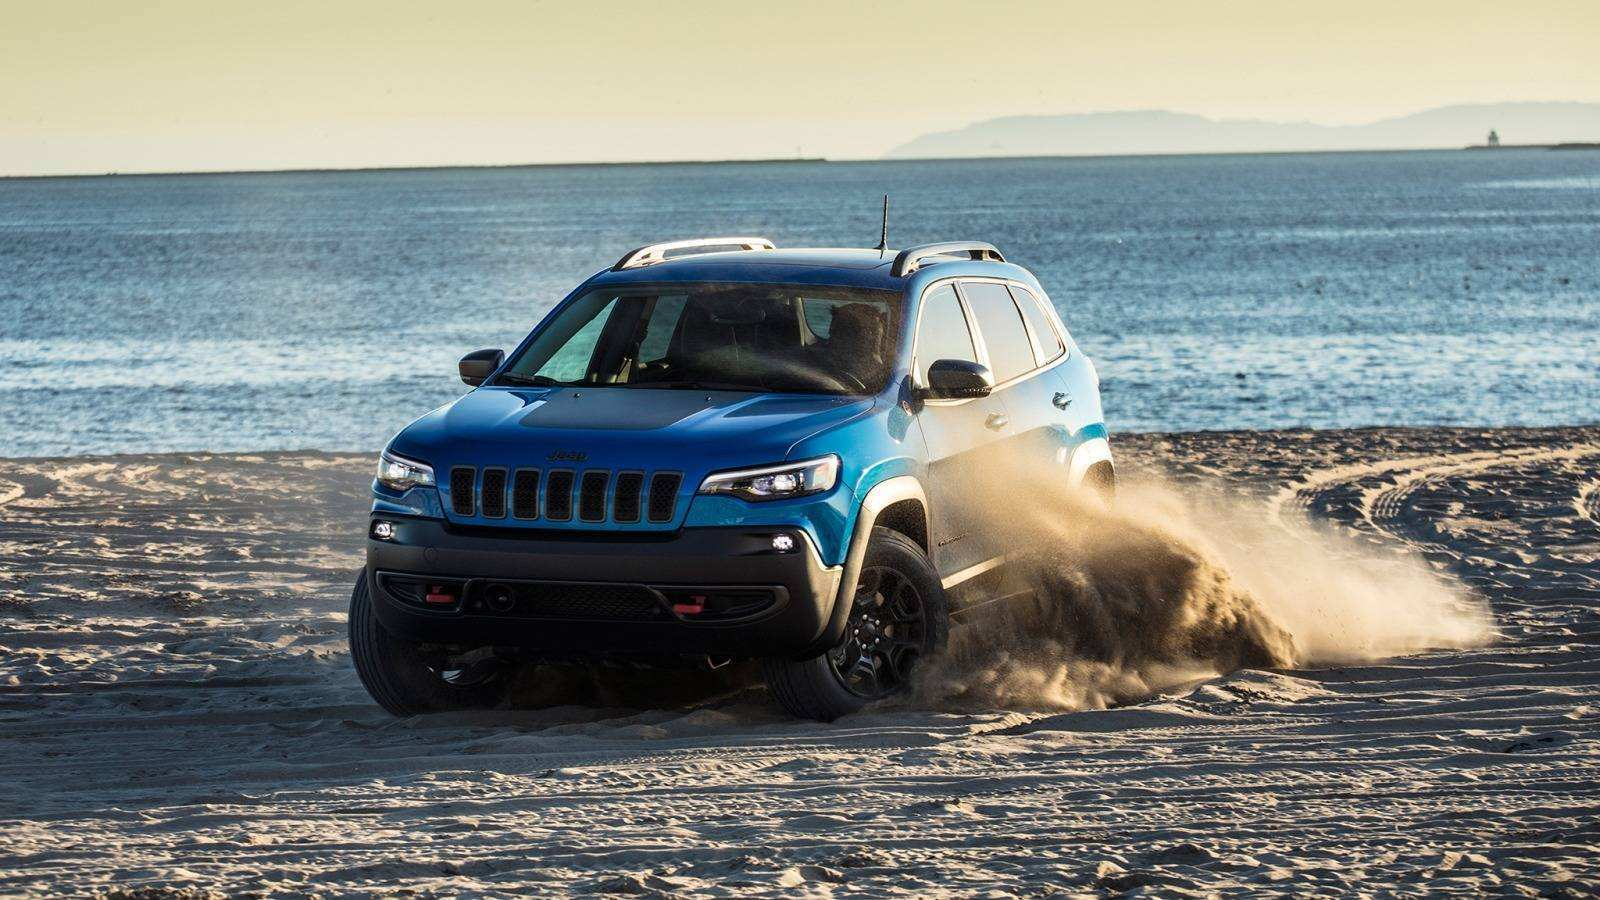 47 Gallery of 2019 Jeep Incentives Spy Shoot with 2019 Jeep Incentives